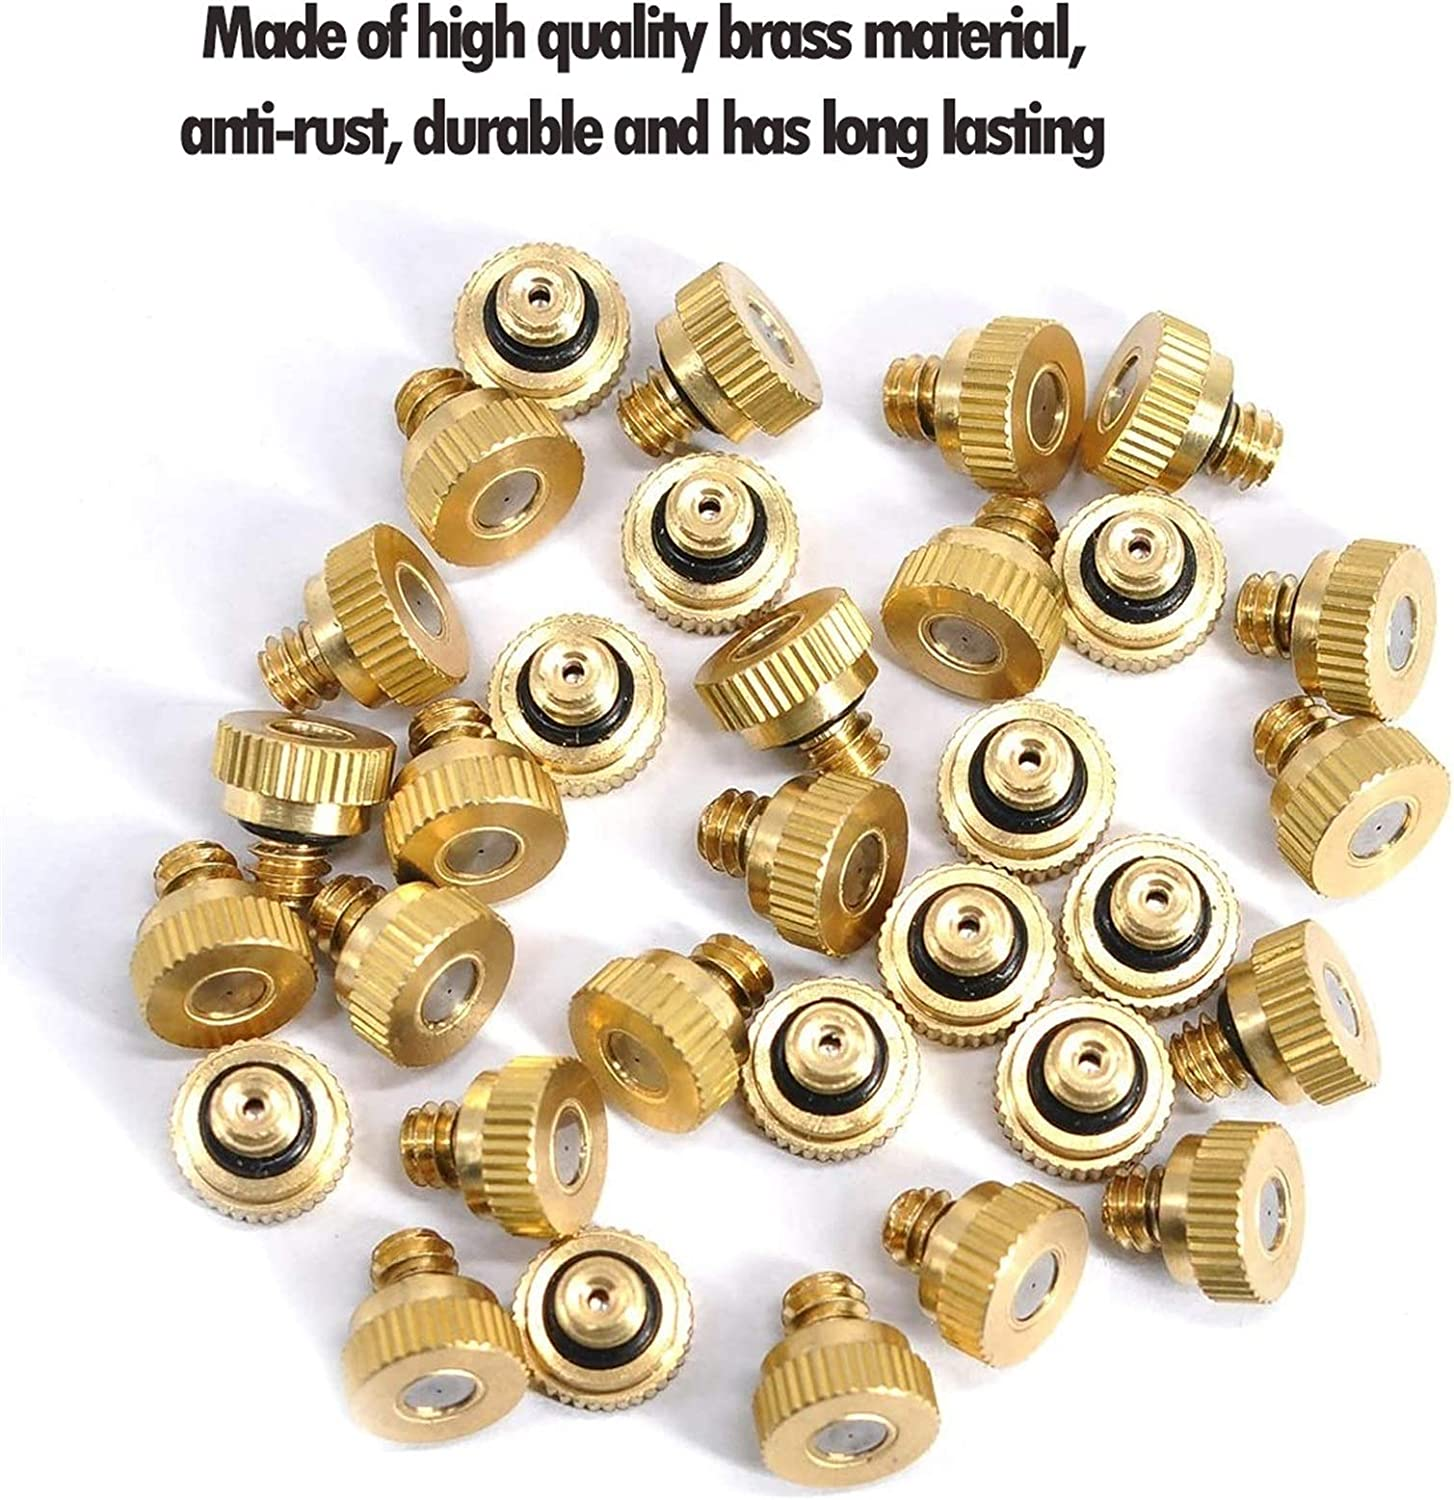 FWKTG 80PCS Brass Mister Nozzles Misting Nozzles for Cooling ...